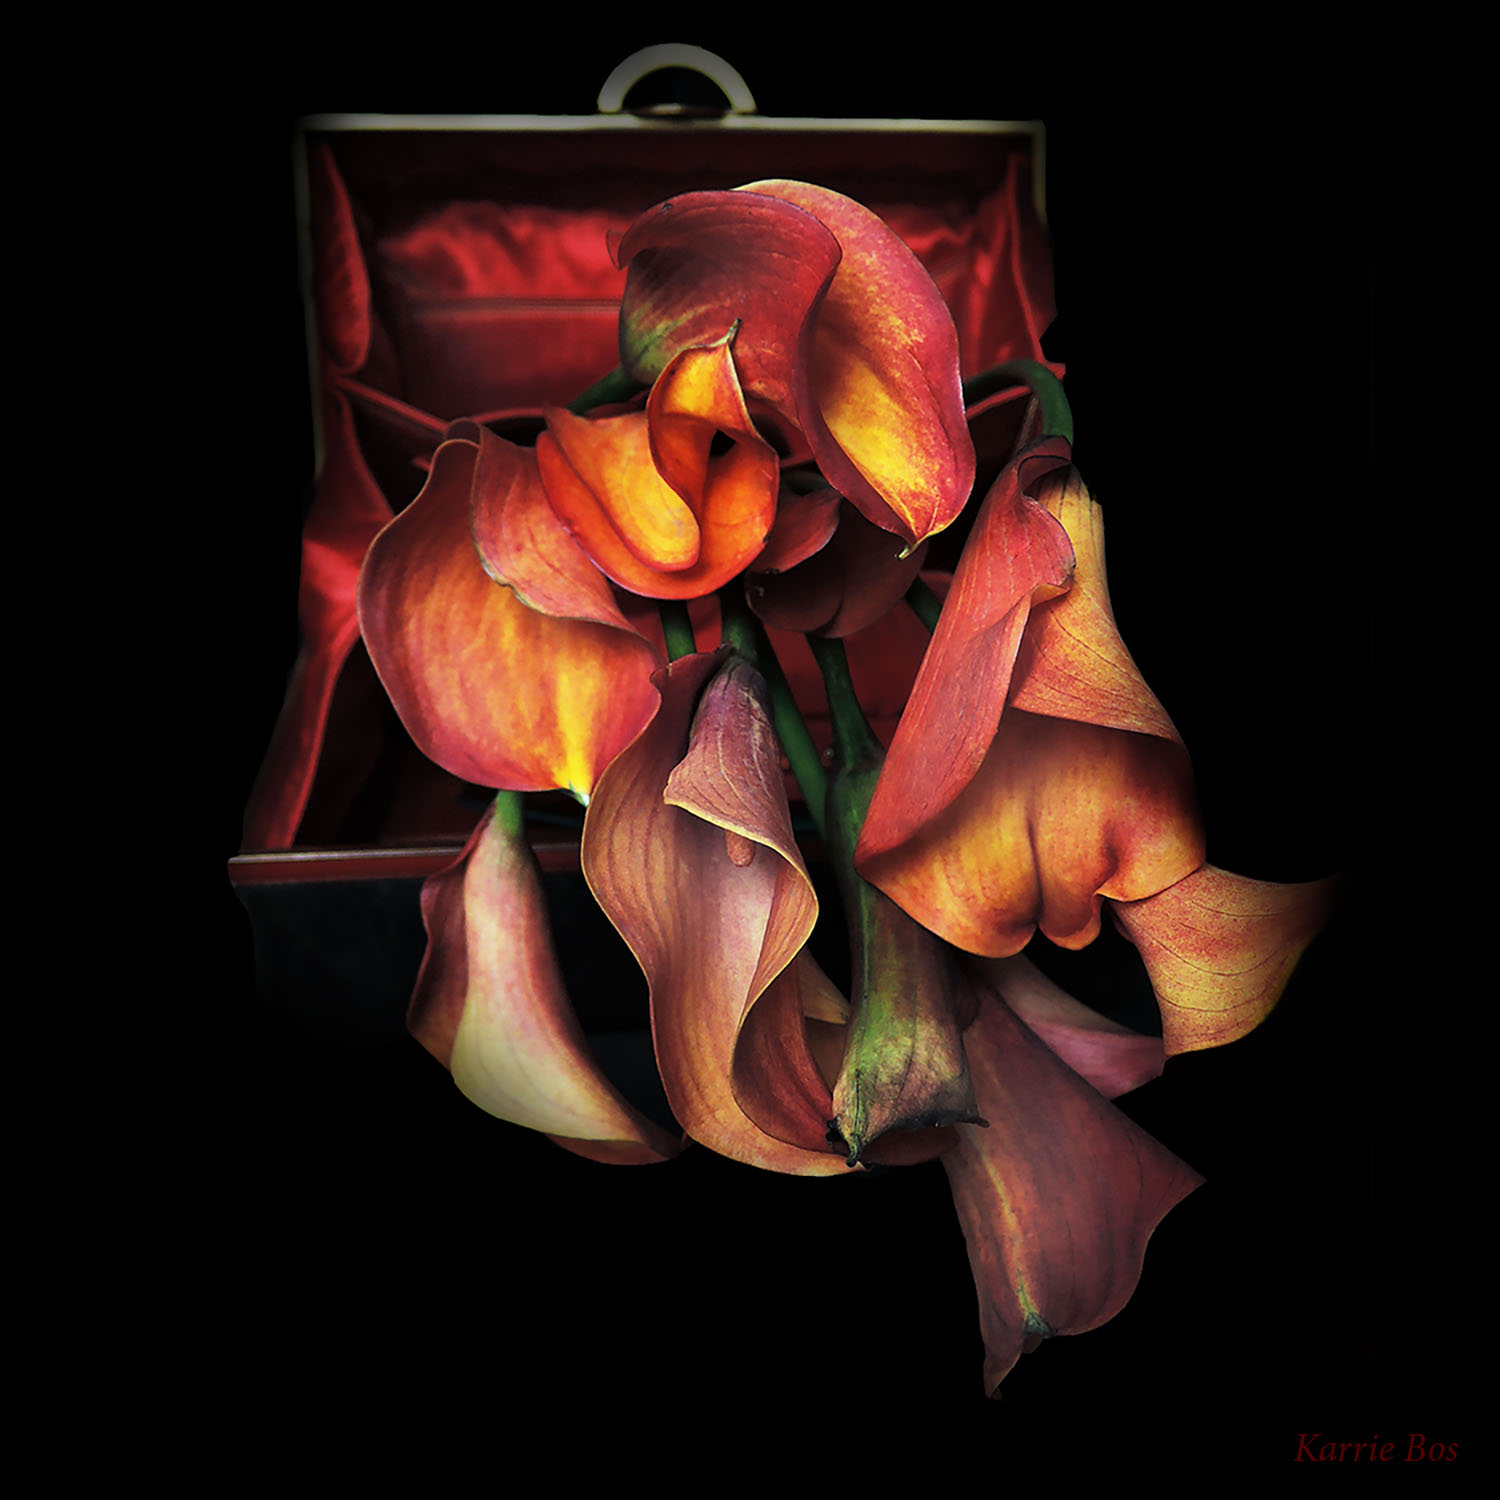 DSCN4635a for tulip purse 12 28 1 by 1 gallery.jpg